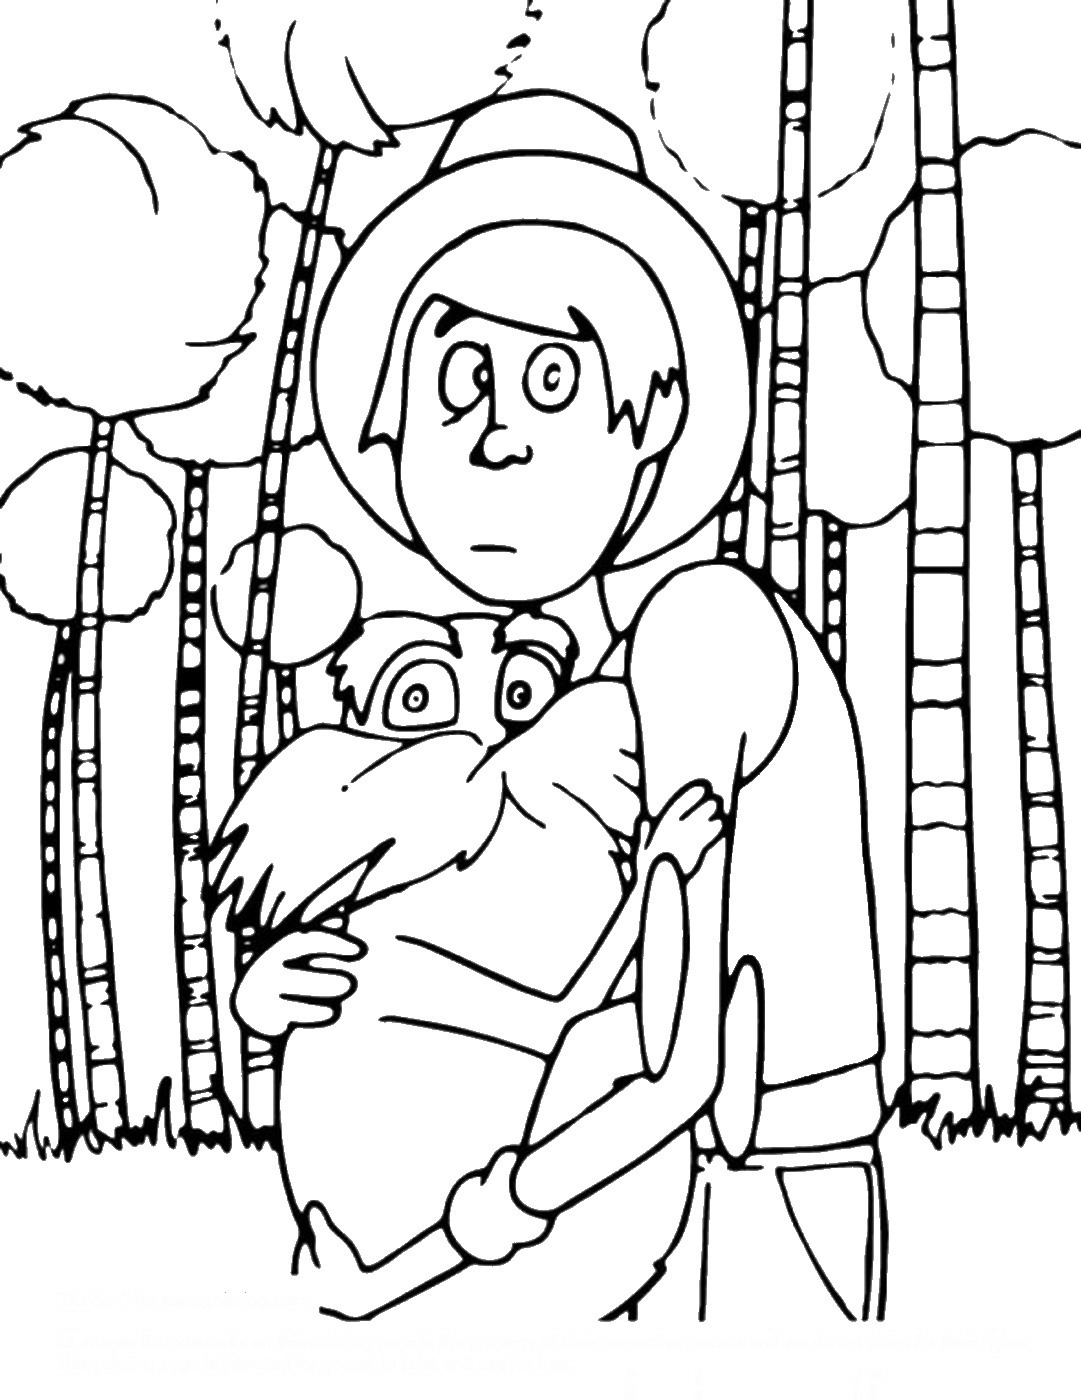 pictures of the lorax to color lorax coloring pages free printable lorax coloring pages the pictures lorax color to of